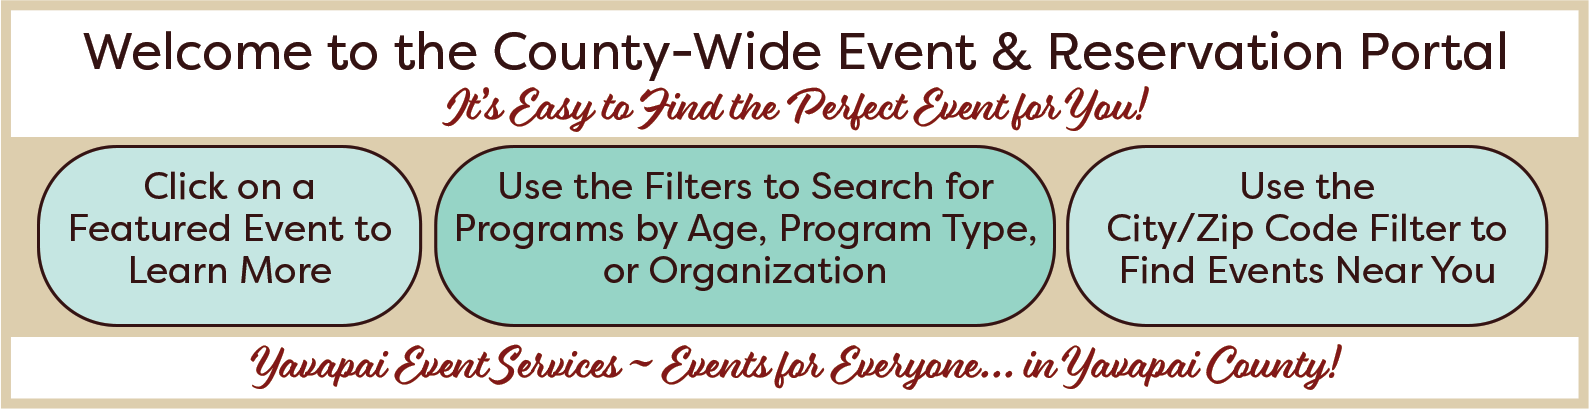 Banner reading: Welcome to the County-Wide Event & Reservation Portal. It's easy to find the perfect event for you! Click on a Featured Event to learn more. Use the filters to search for programs by age, program type, or organization. Use the City/Zip Code filter to find events near you. Yavapai Event Services-events for everyone...in Yavapai County!